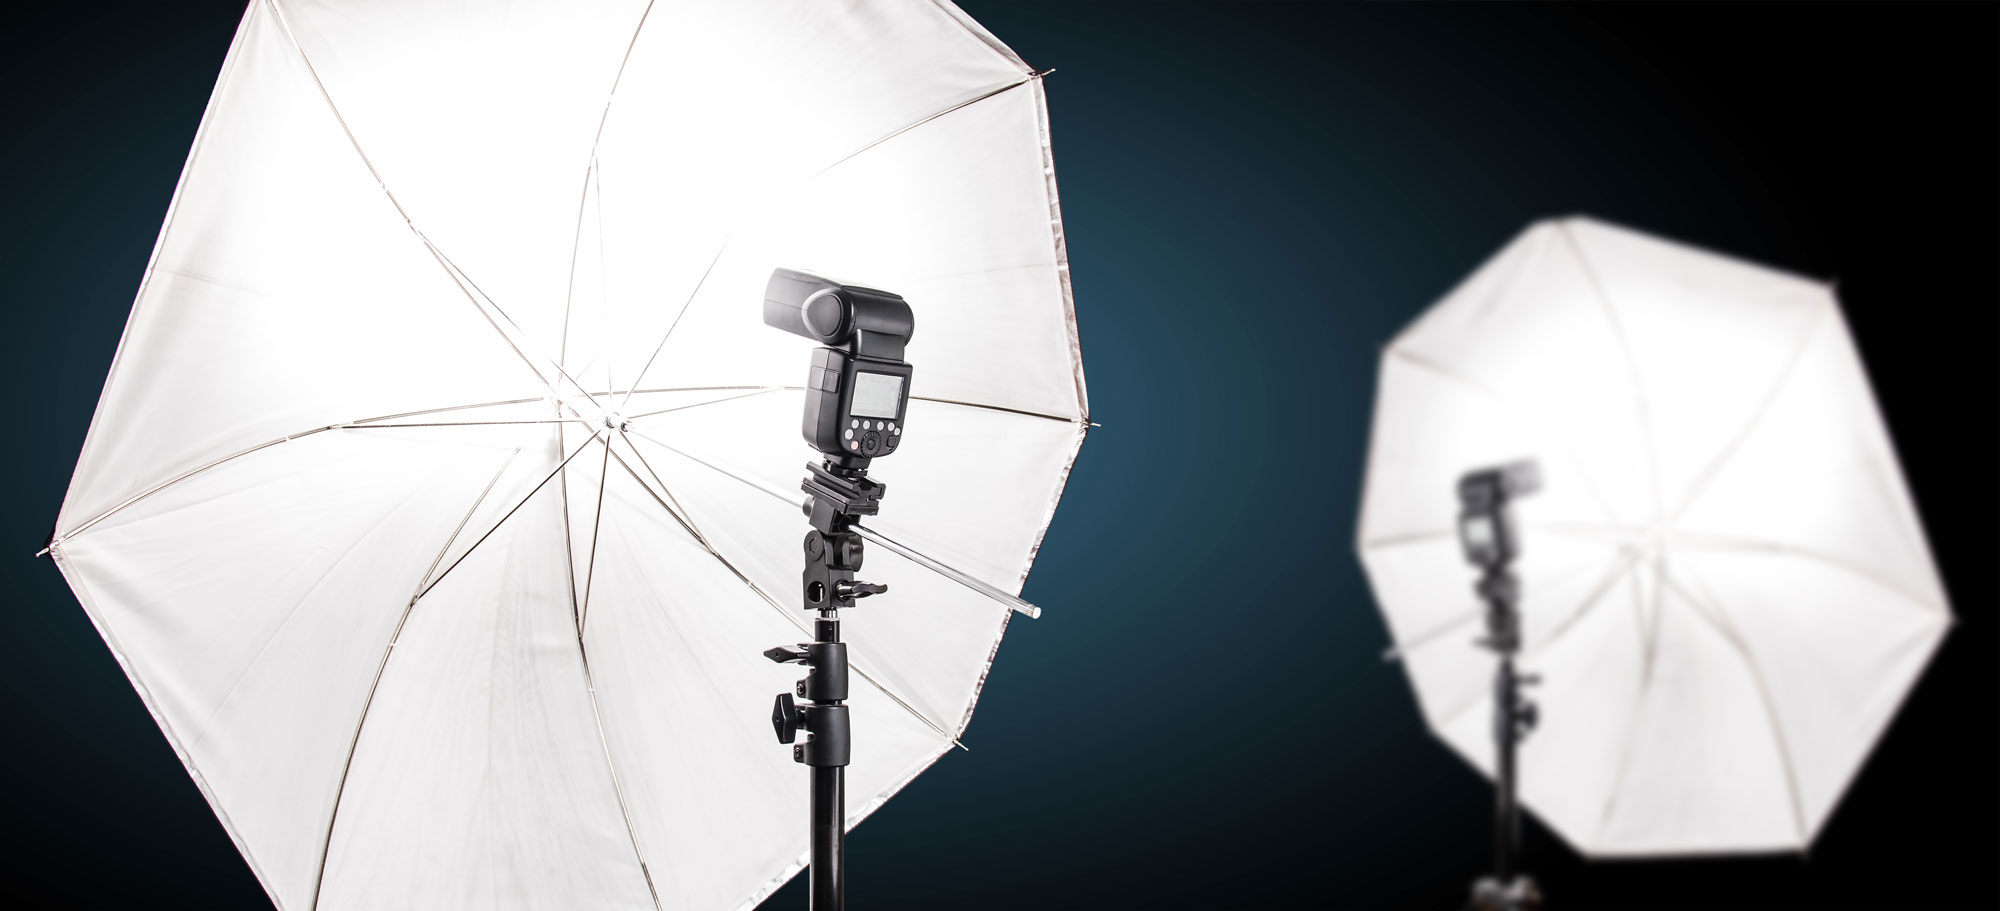 A simple umbrella and flash can work well as a quick setup lighting option for small spaces.